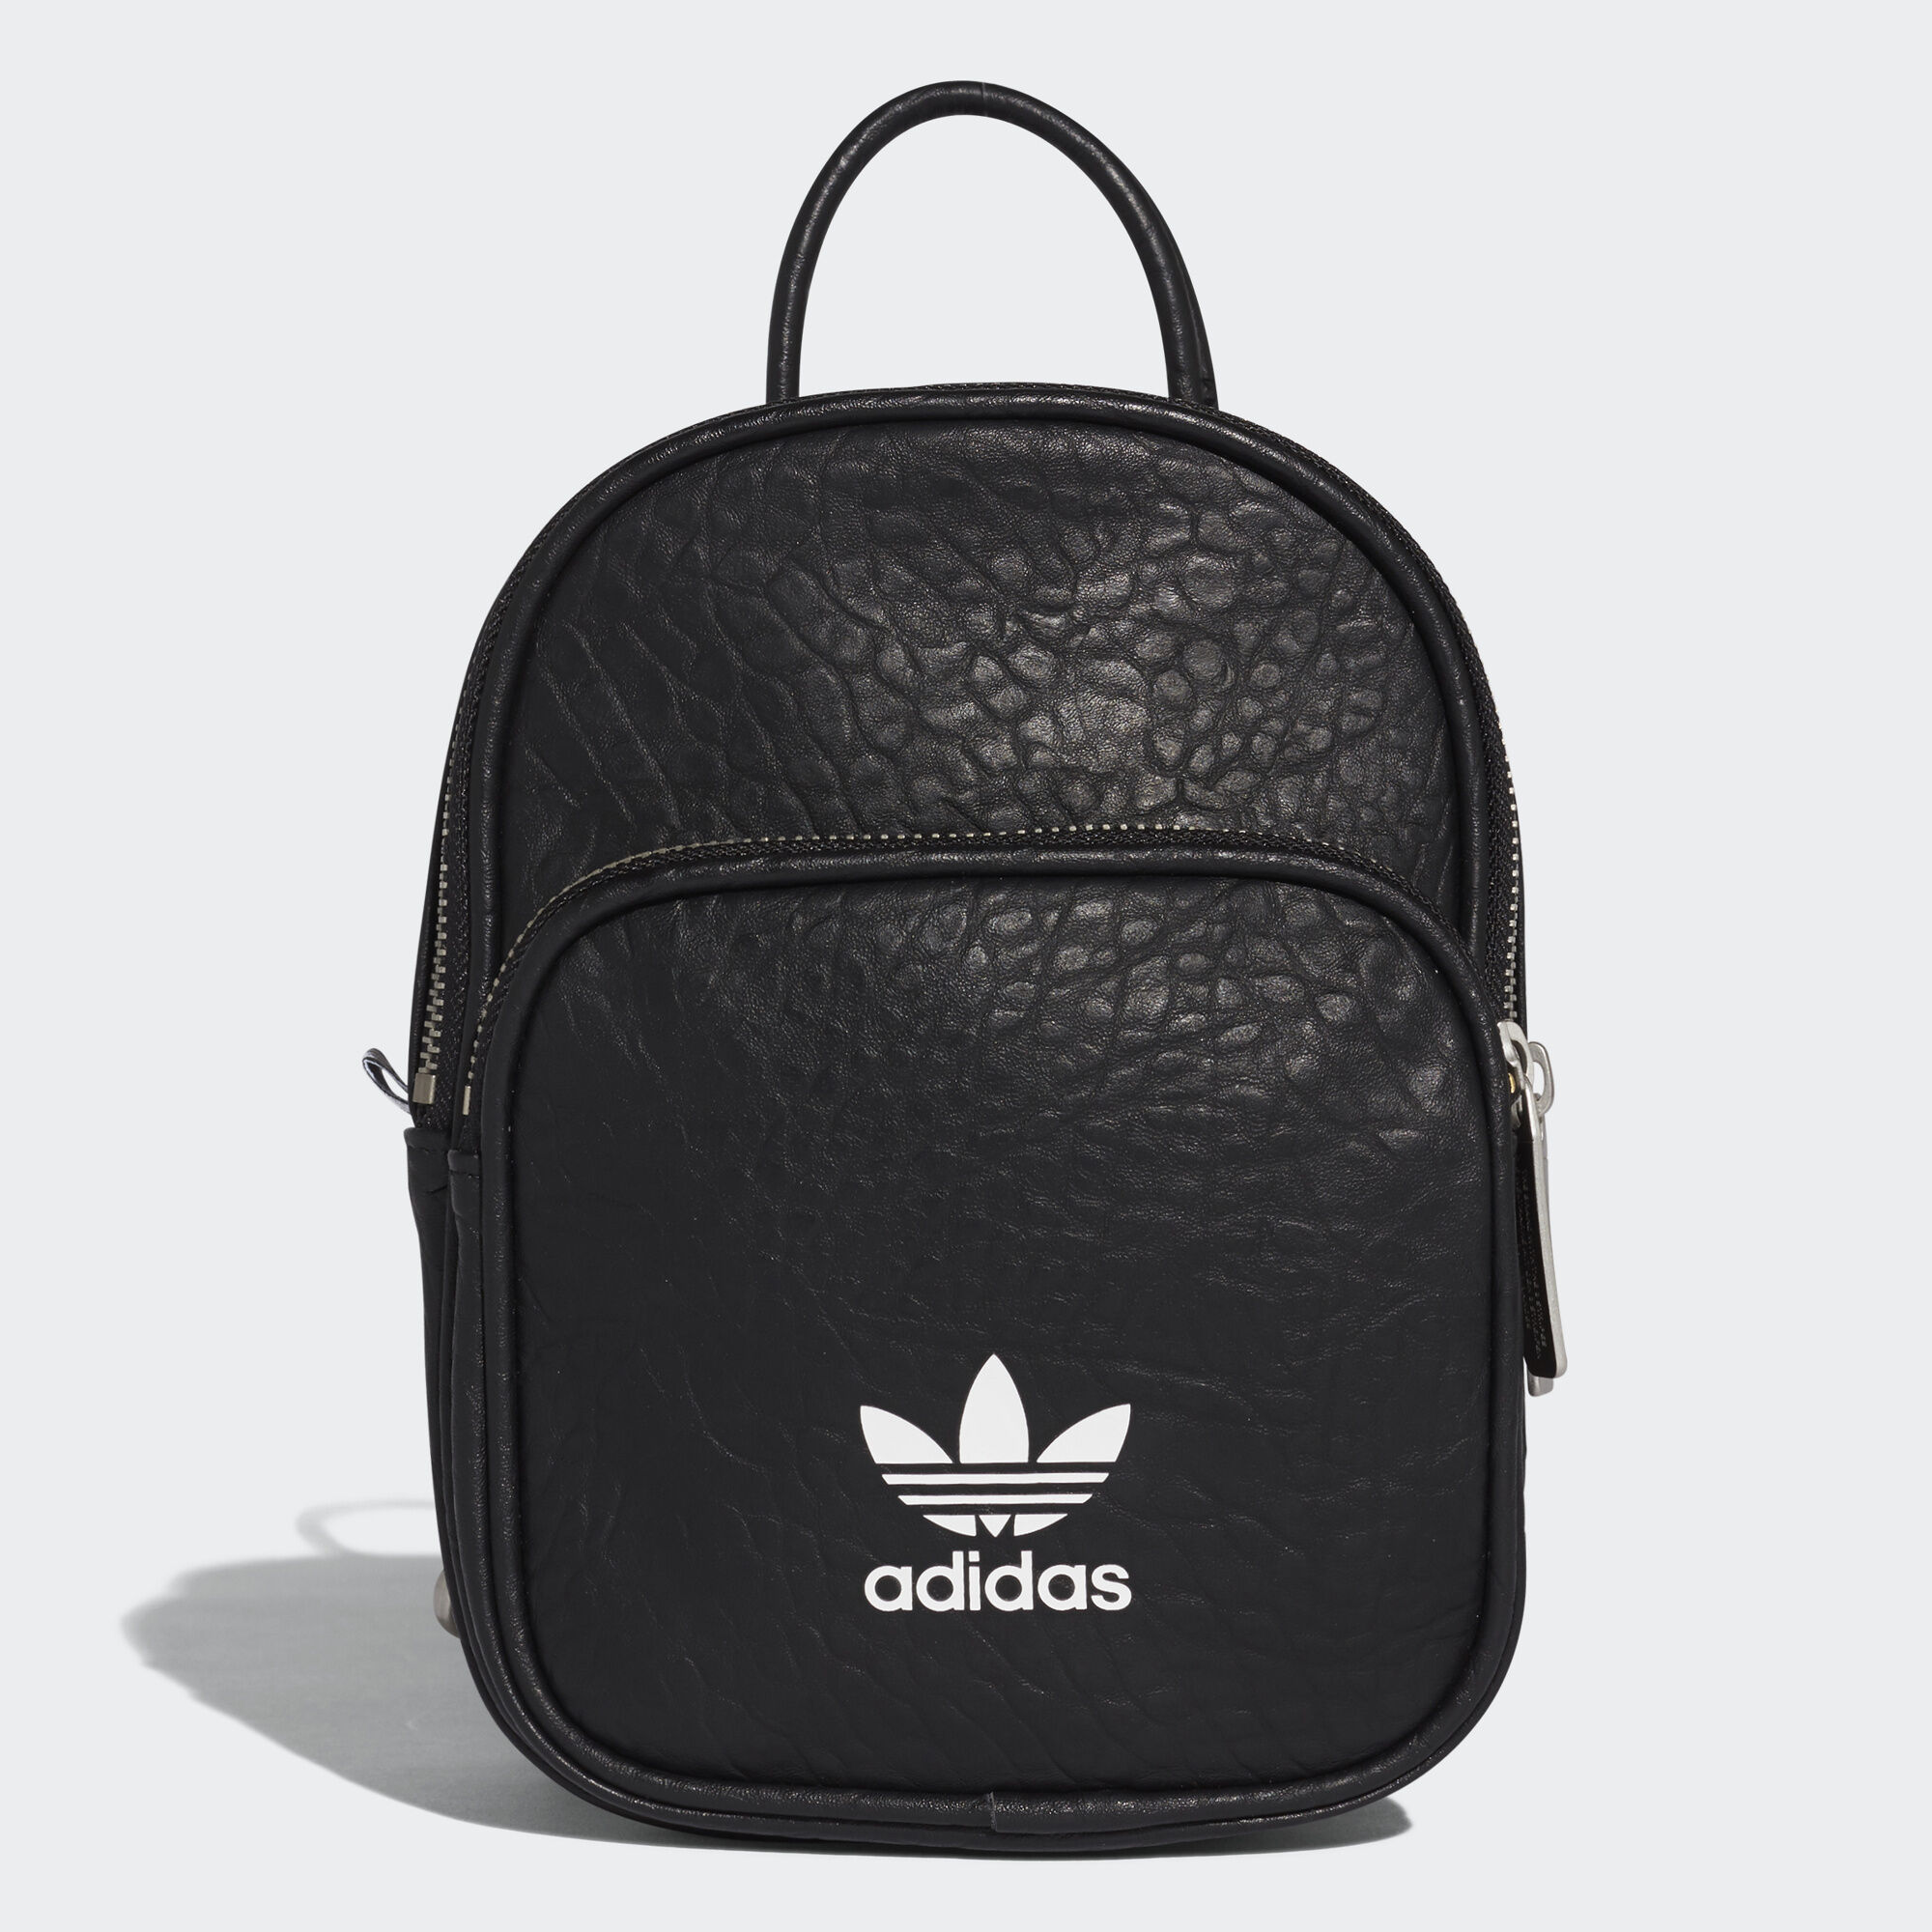 173f31ad222 Where To Buy Adidas Mini Backpack - CEAGESP